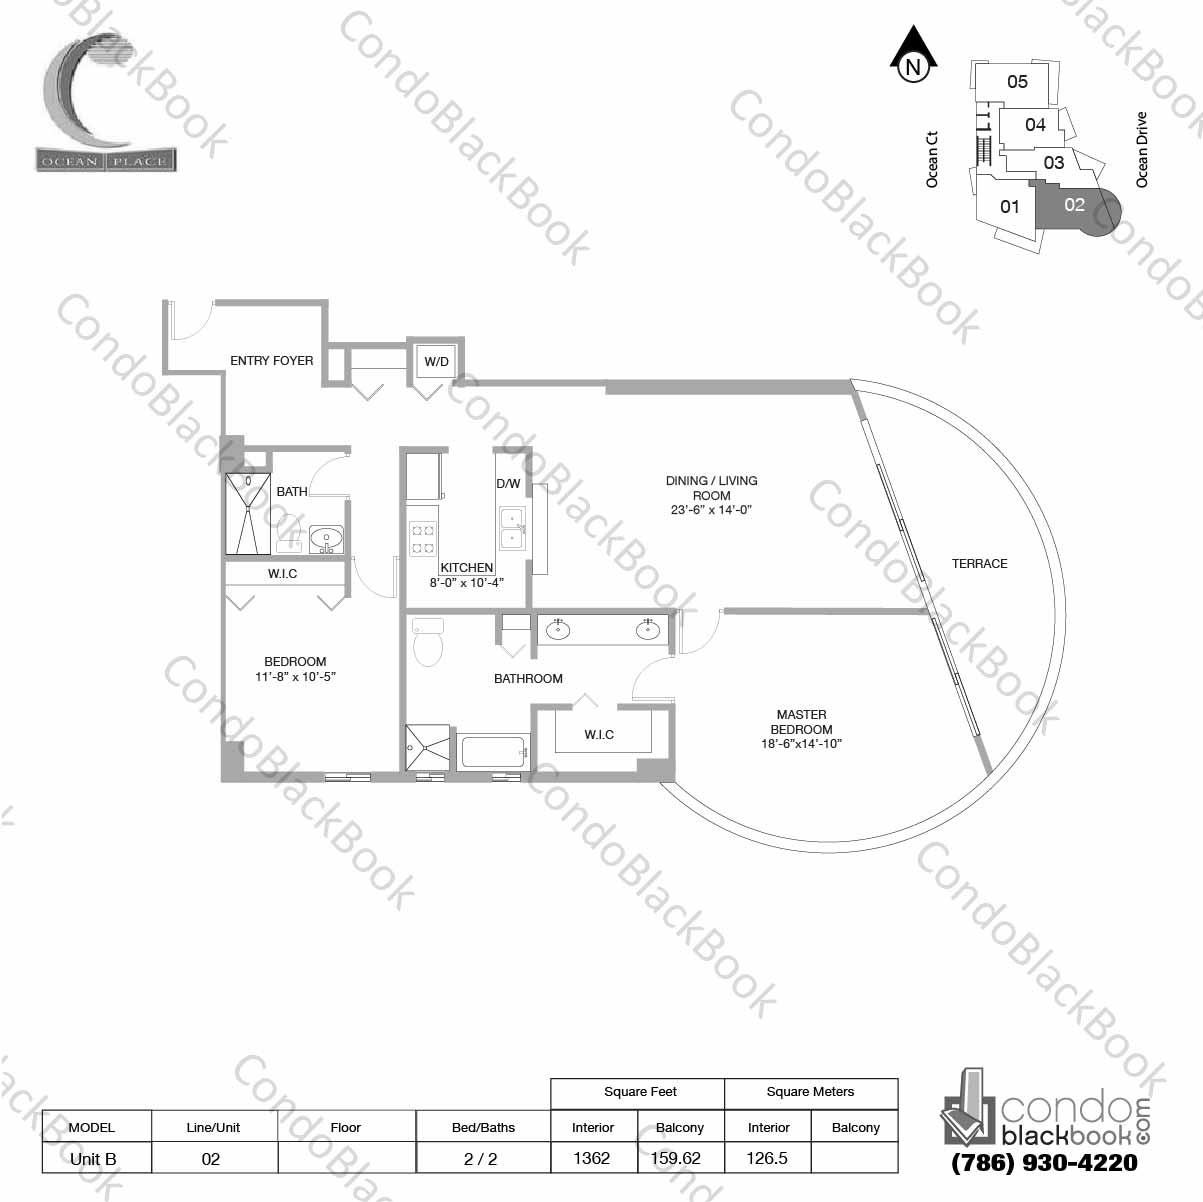 Floor plan for Ocean Place South Beach Miami Beach, model Unit B, line 02, 2 / 2 bedrooms, 1362 sq ft